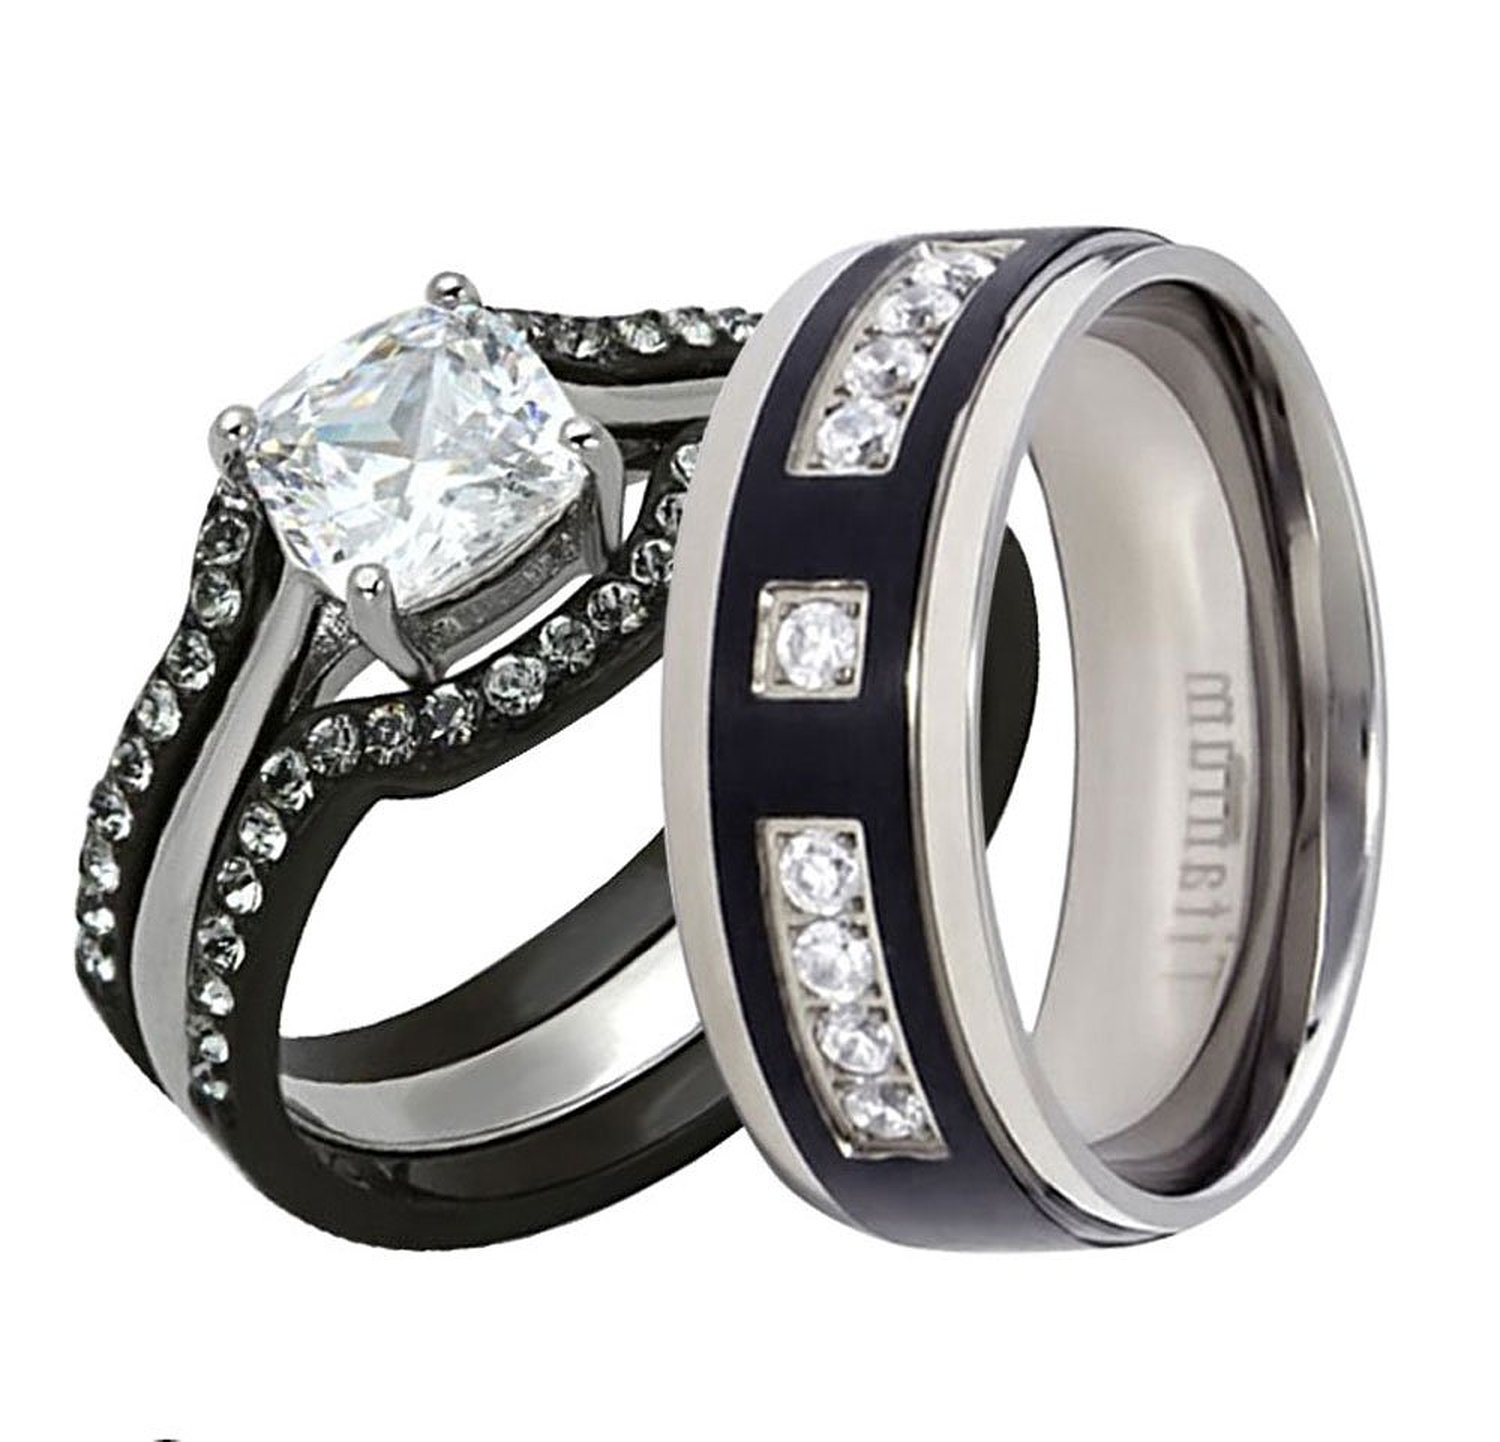 His And Hers Wedding Ring Set Cushion Cubic Zirconia Black Plated Stainless Steel Titanium 4 Pcs SPJ